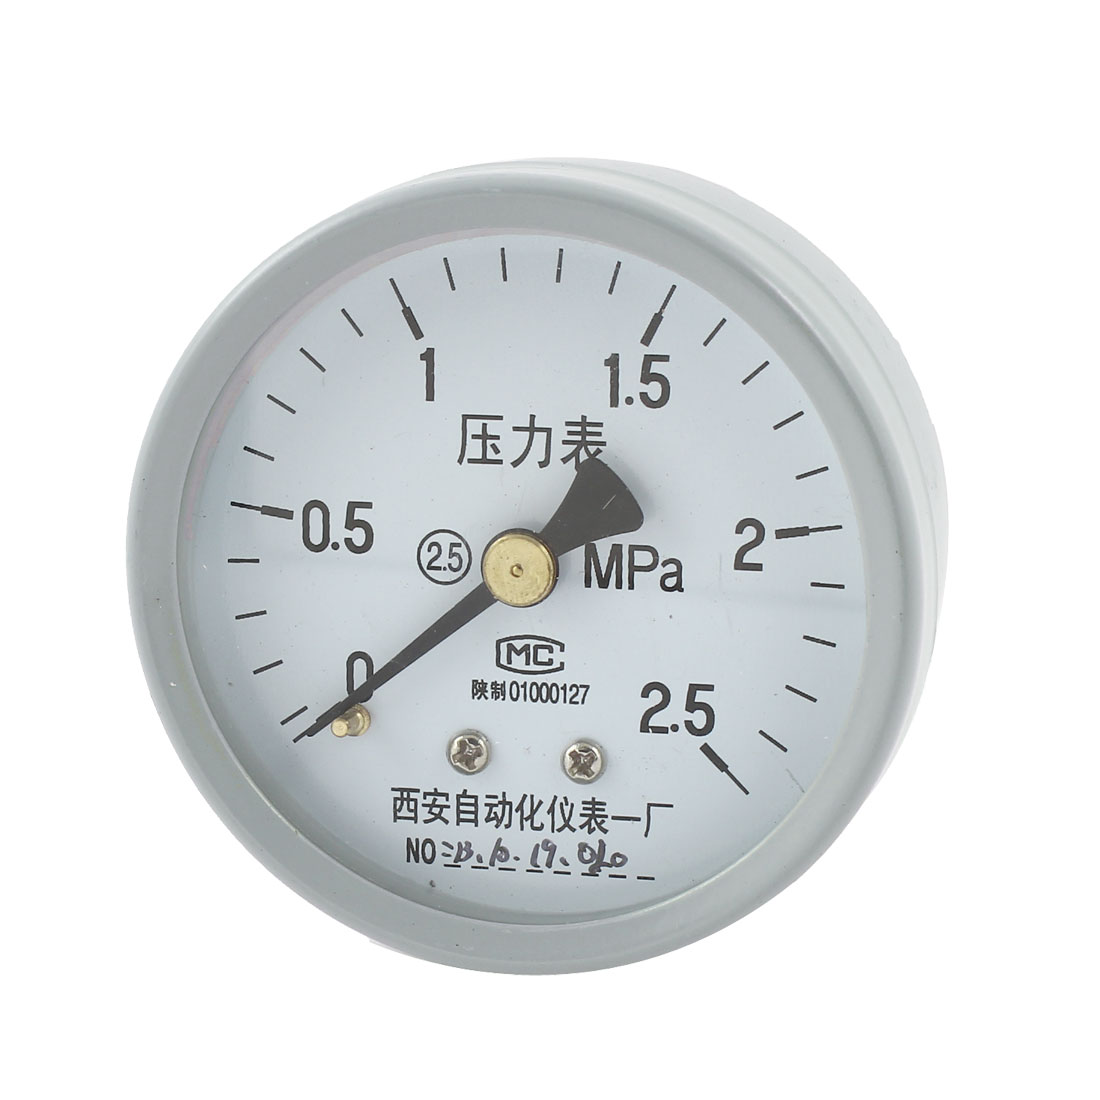 1/4PT Male Threaded 0-2.5Mpa Arabic Number Display Air Pressure Measuring Gauge